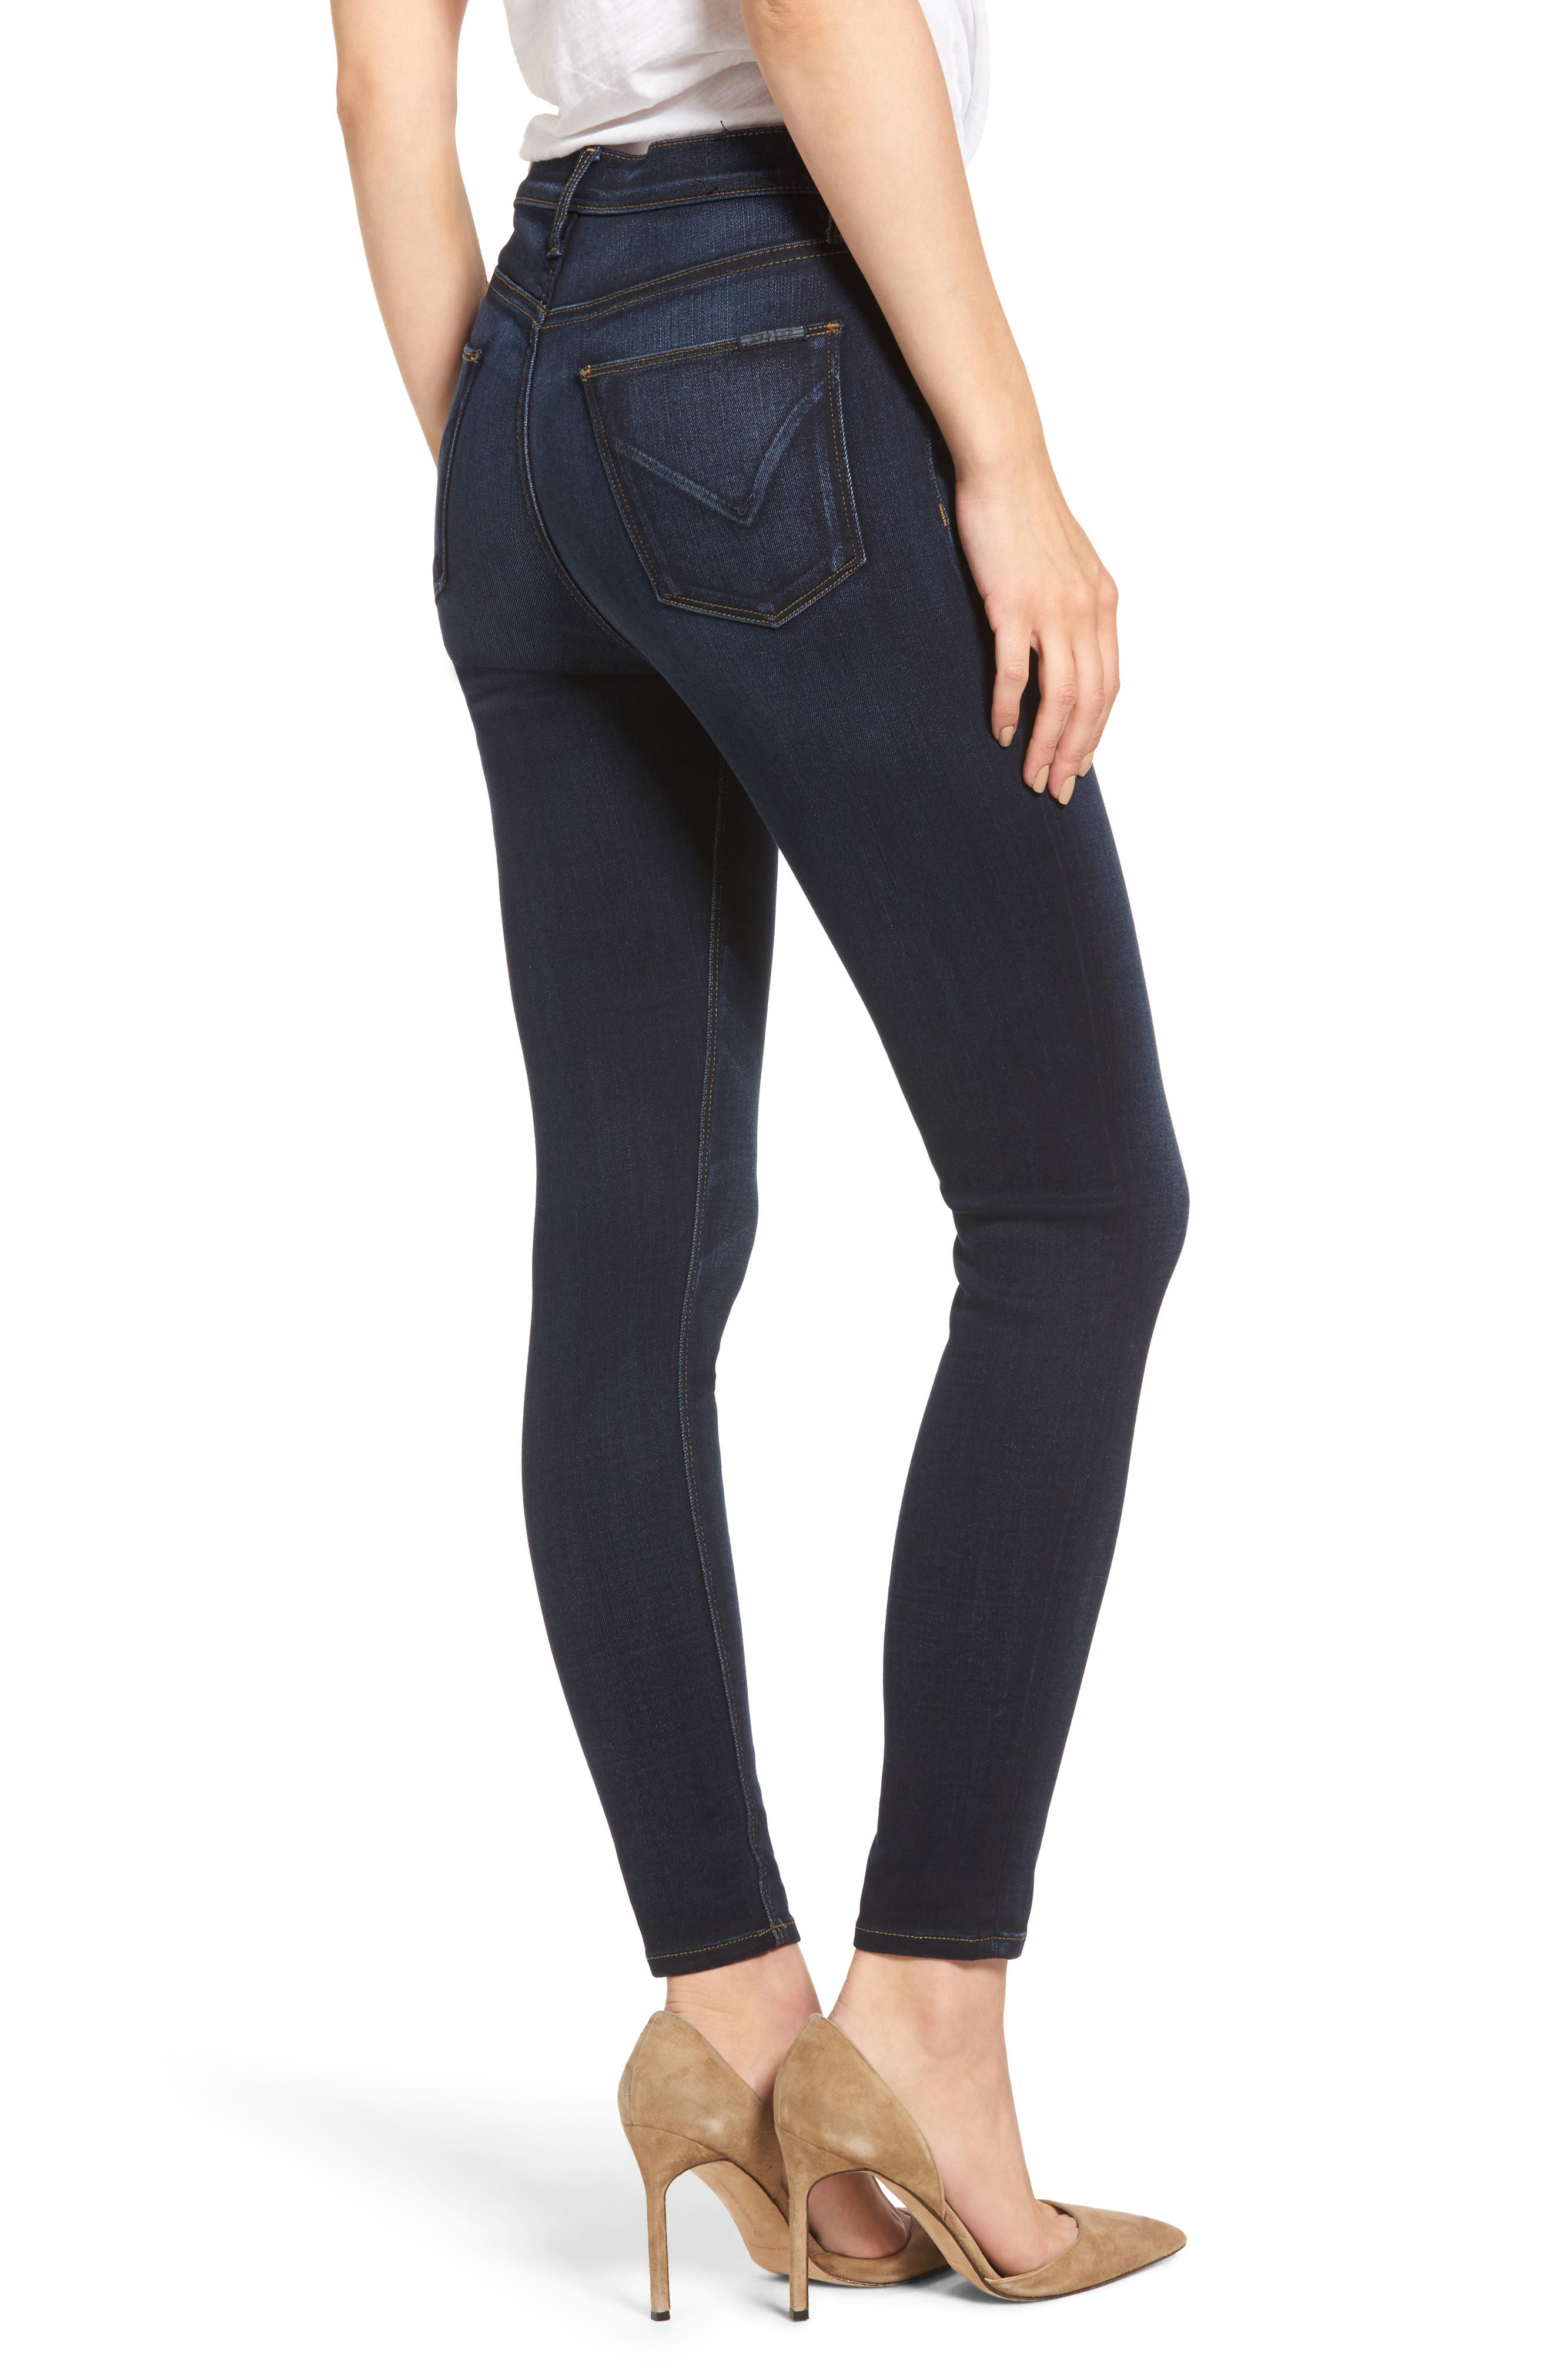 Barbara High Waist Super Skinny Jeans,                             Alternate thumbnail 2, color,                             402